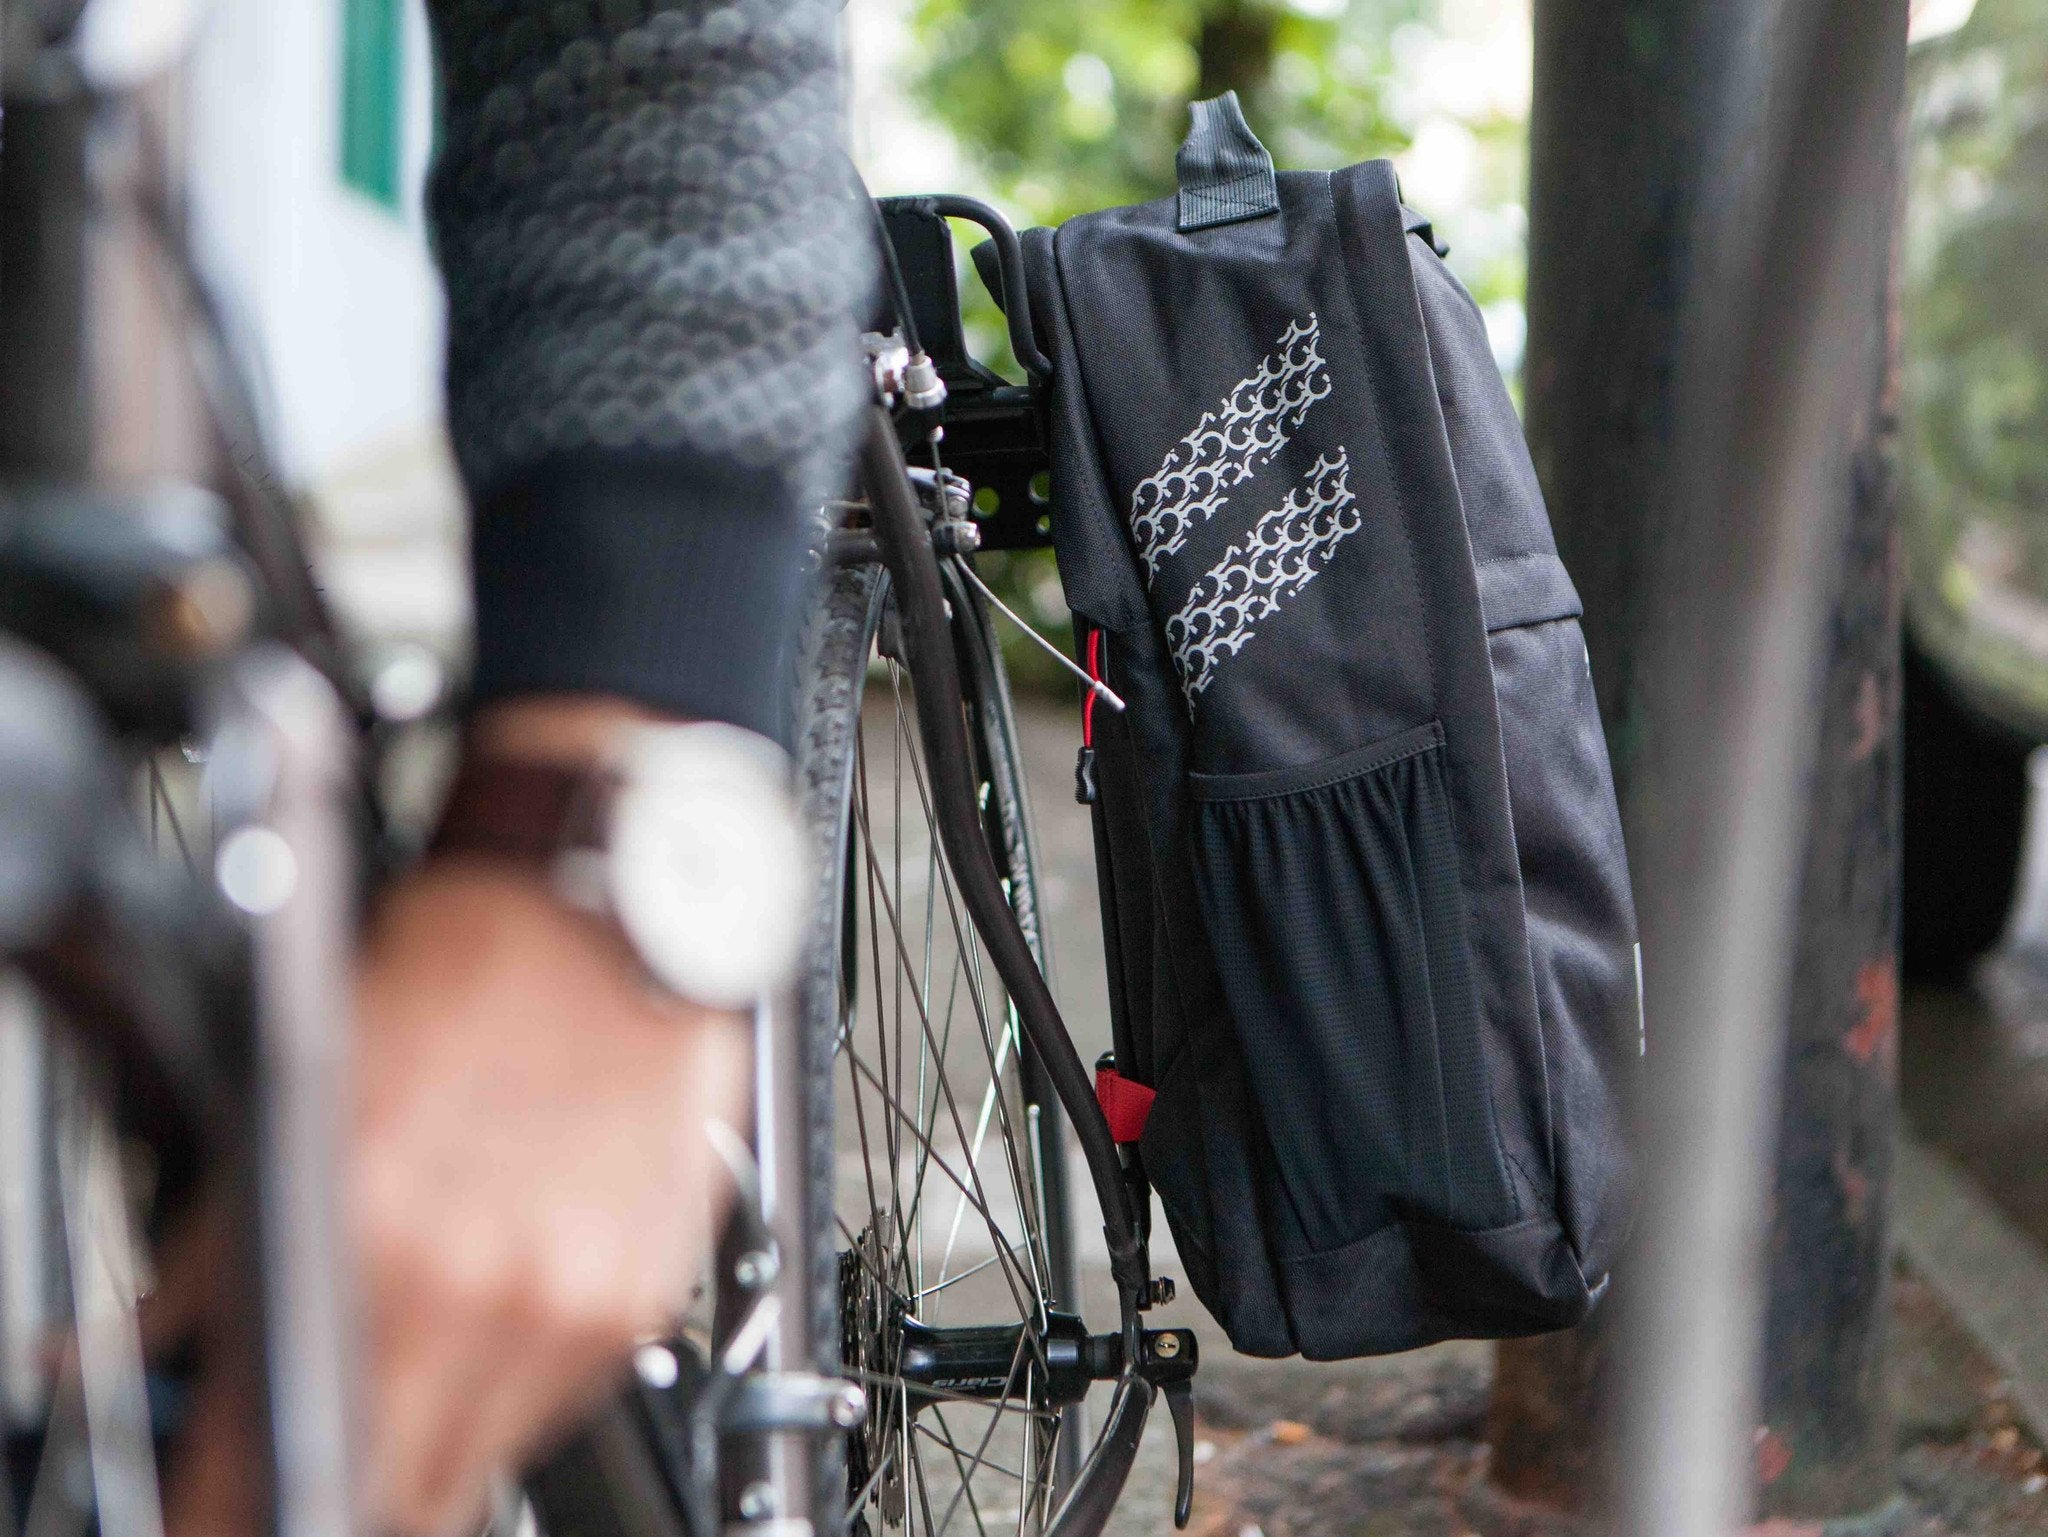 Black Pannier Backpack Convertible on street - Bags - Two Wheel Gear